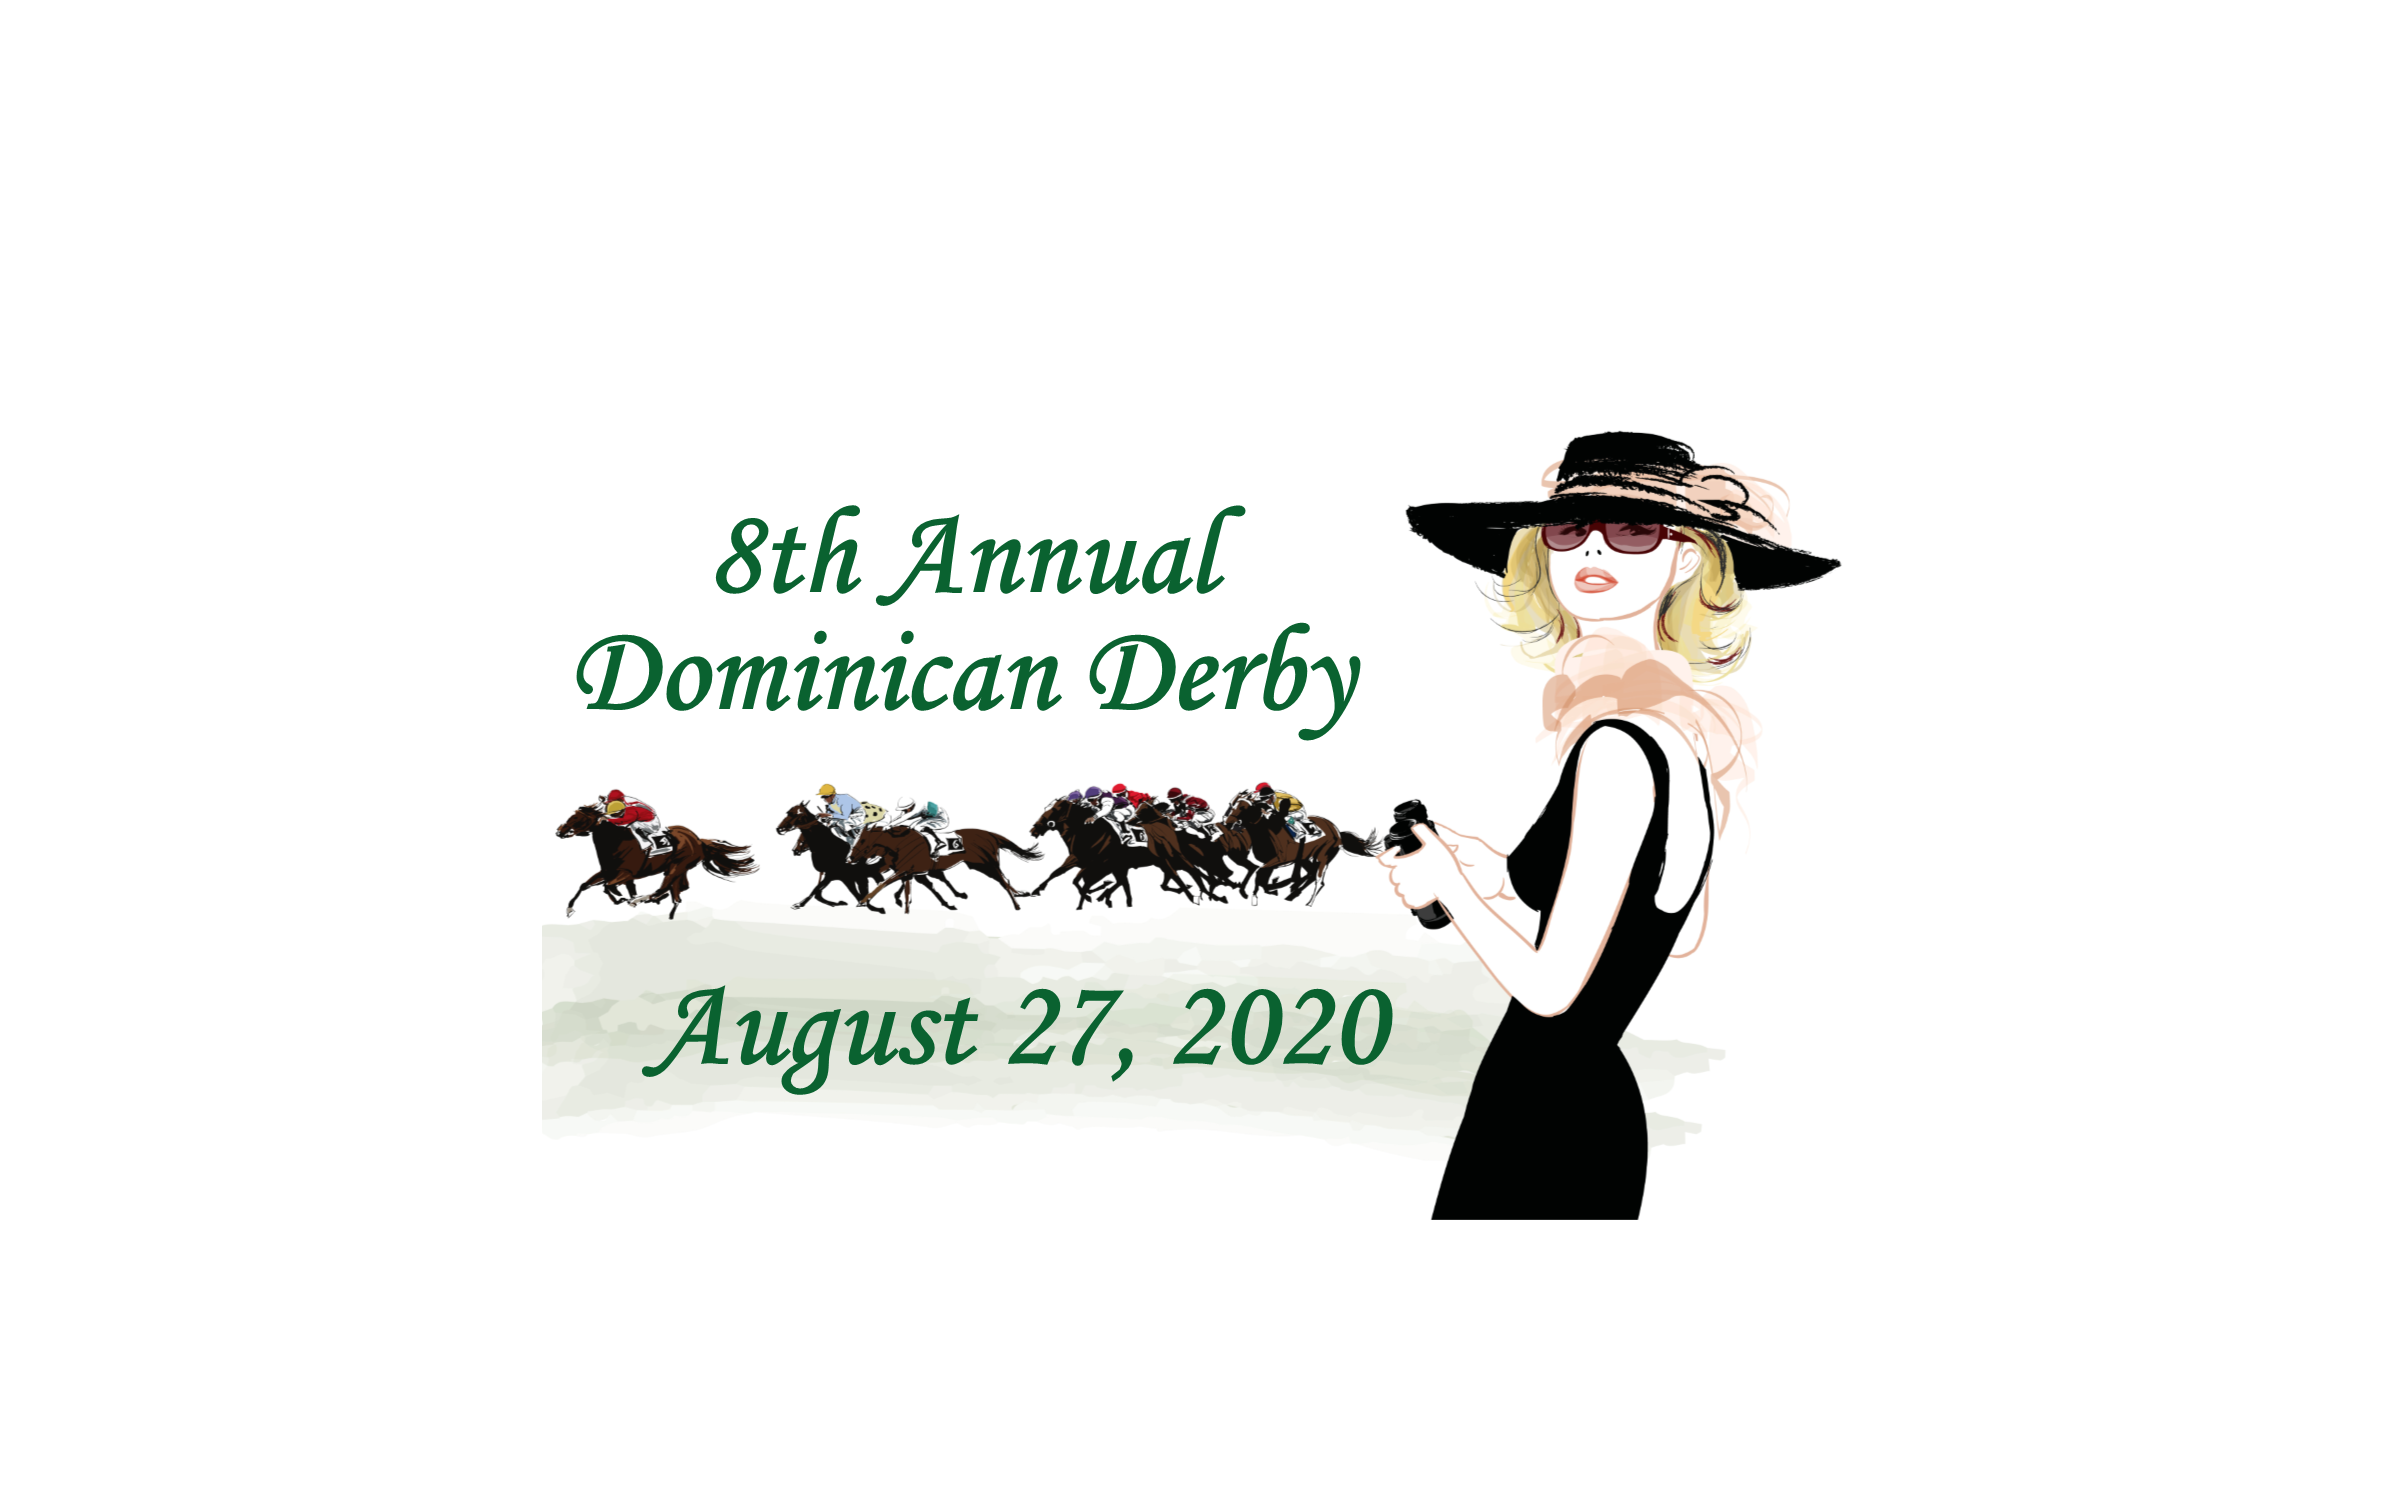 Dominican Derby New Date!